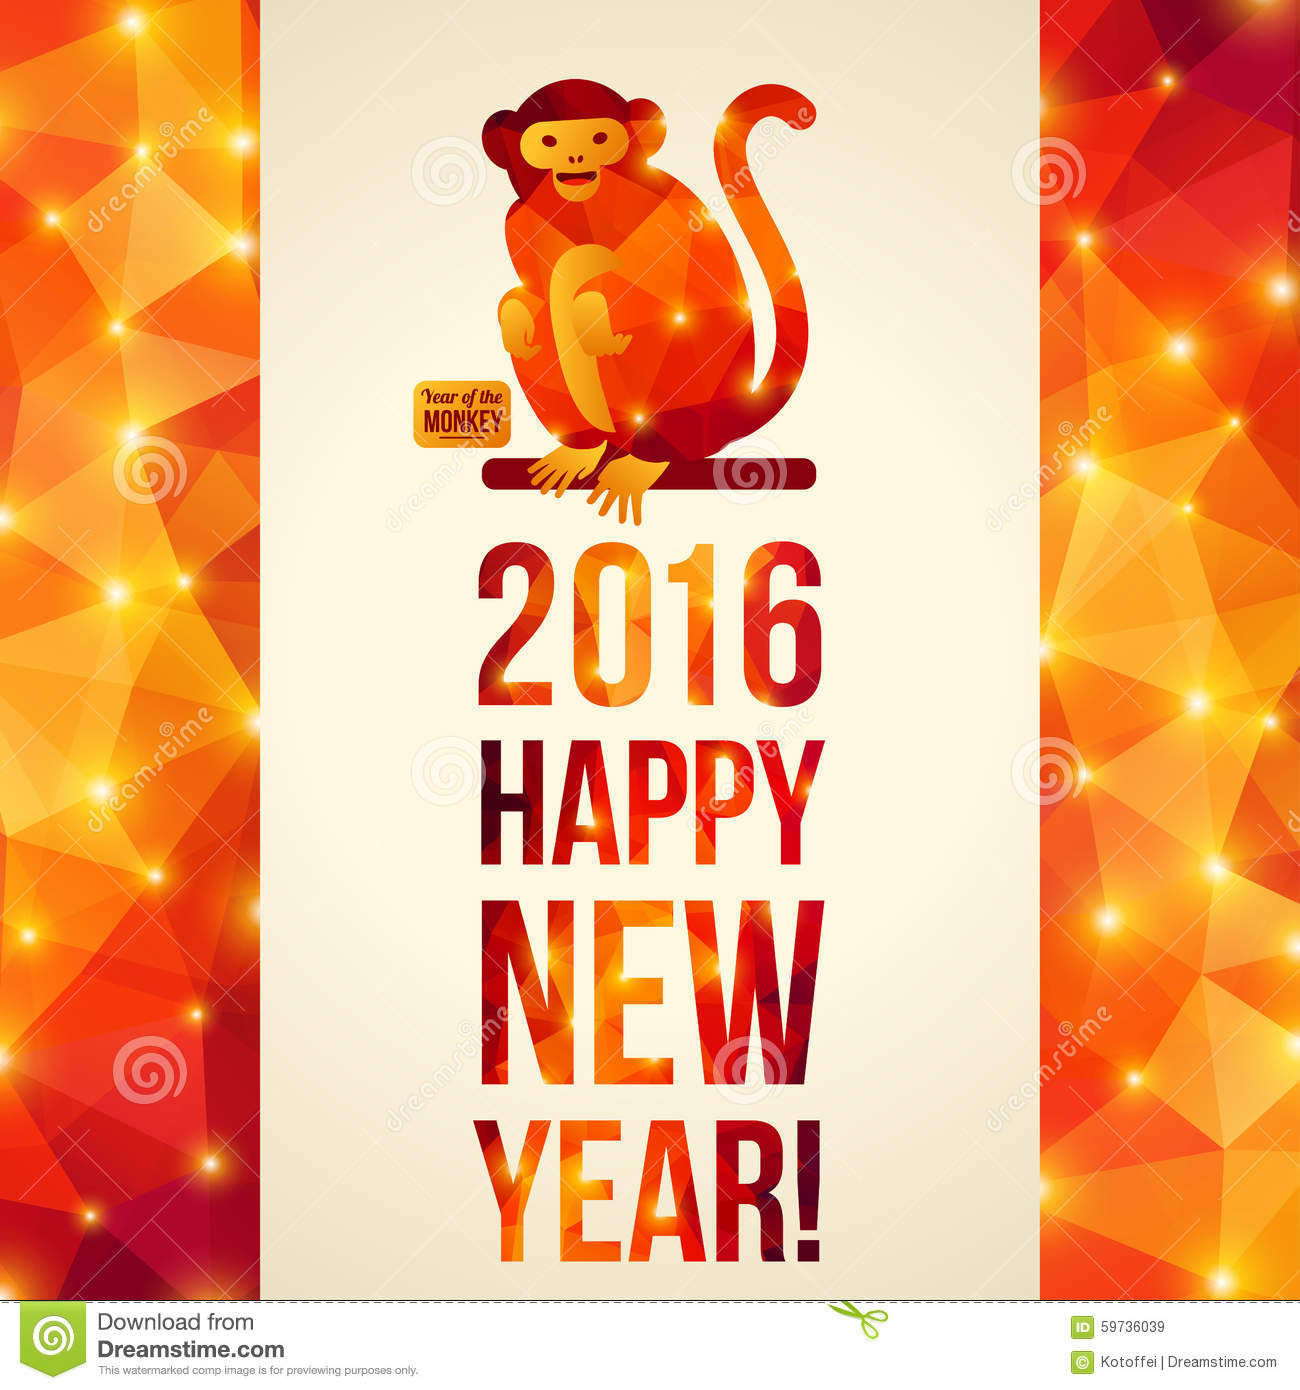 Chinese new year 2016 clipart 4 » Clipart Station.